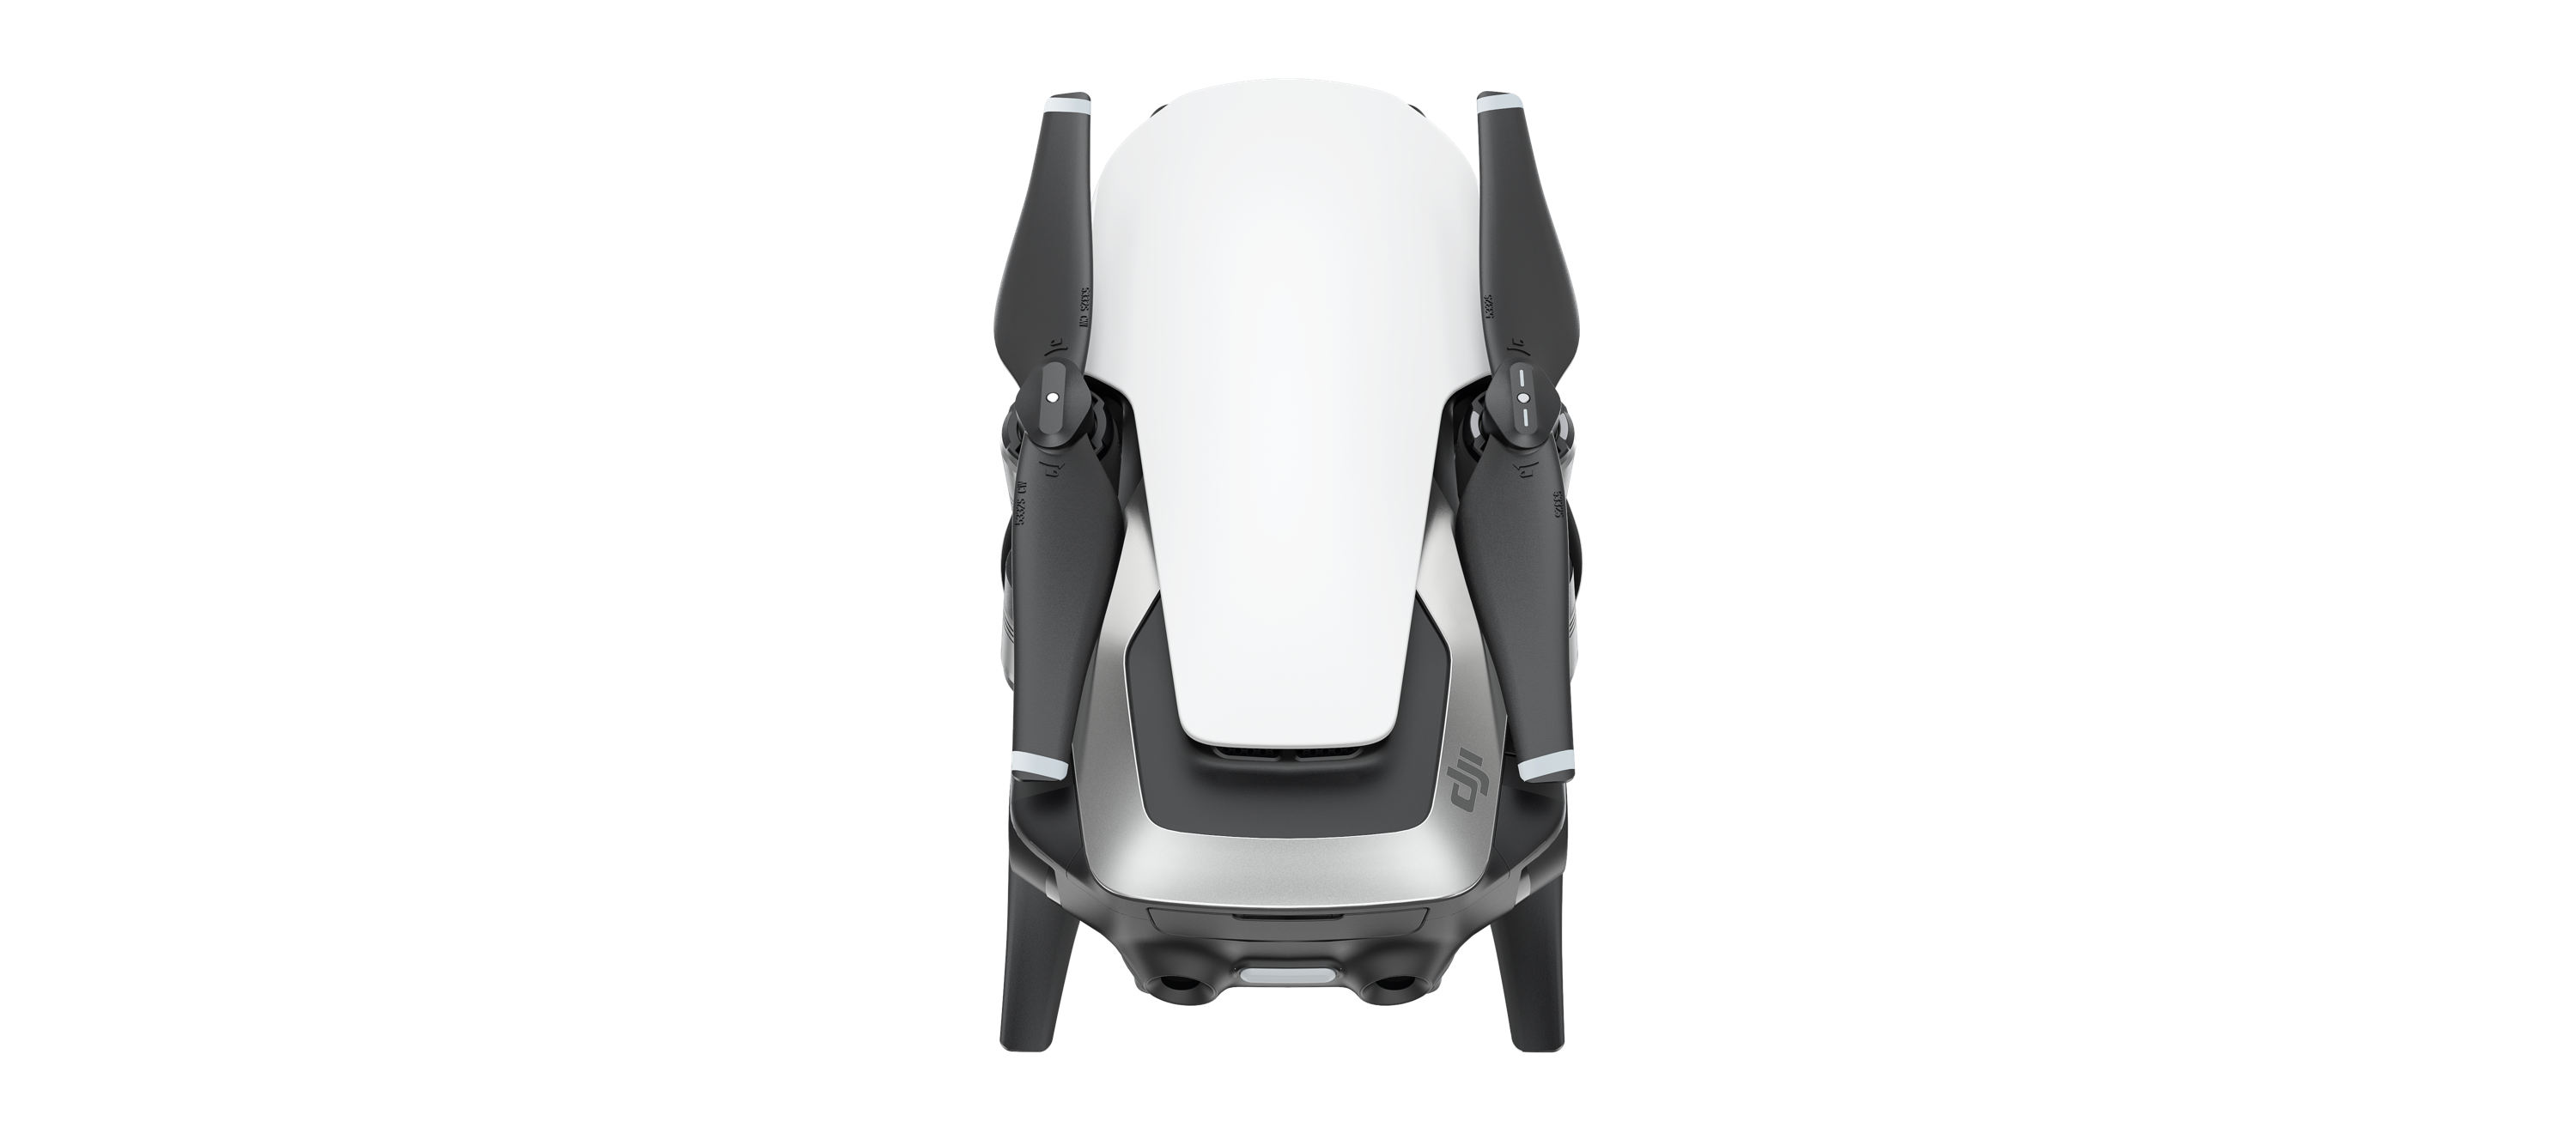 DJI Mavic Air design 2